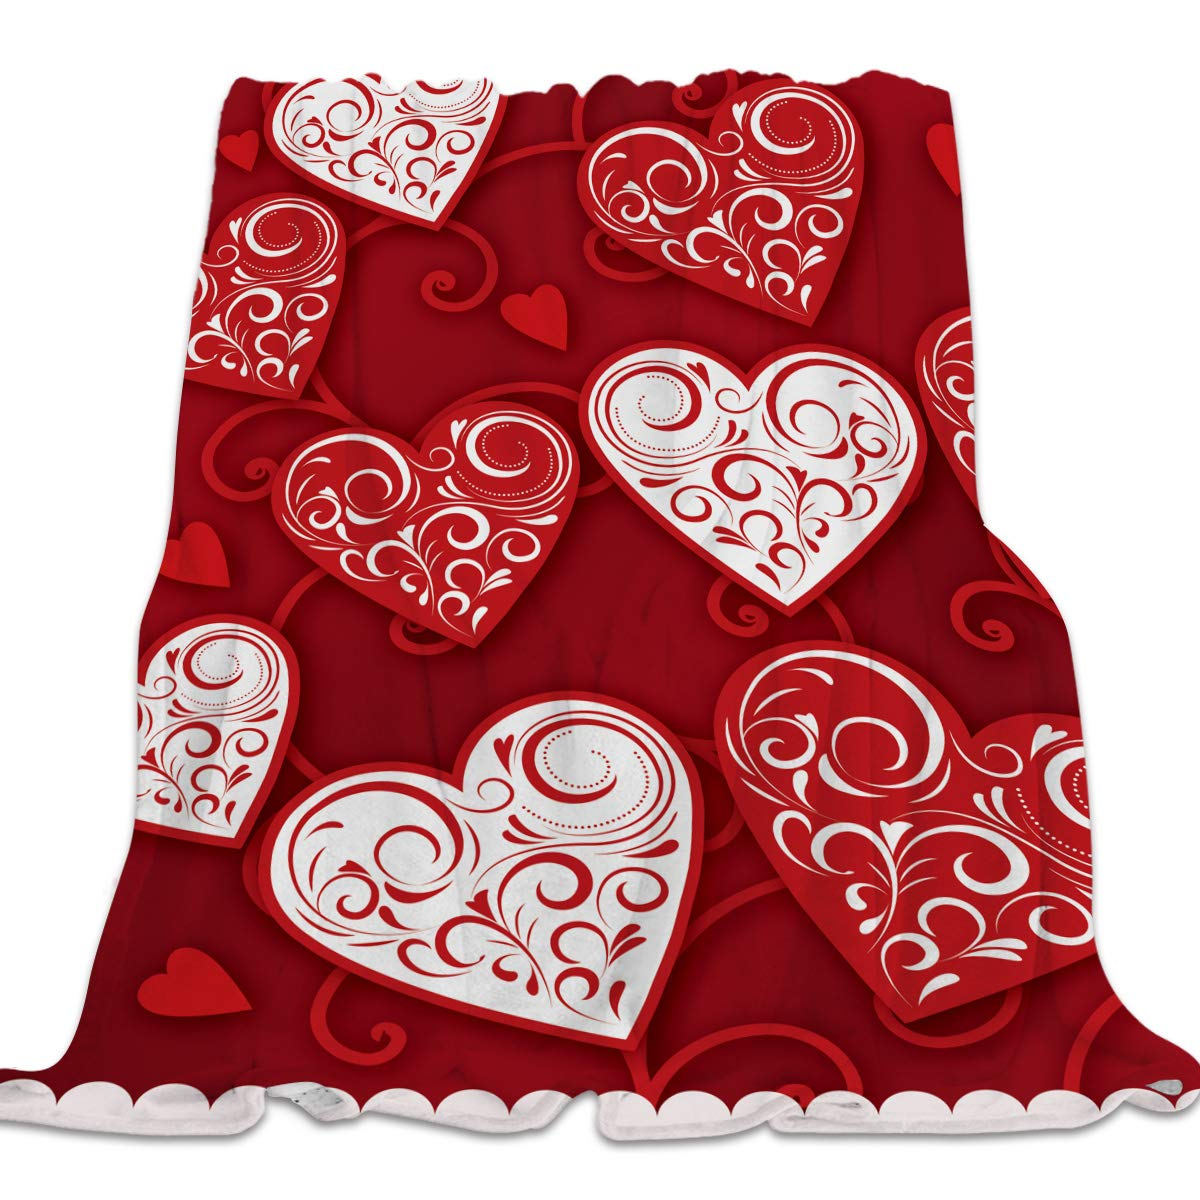 Valentine's062cly5297 49x59inch=125x150cm Clouday Flannel Fleece Bed Blanket Soft ThrowBlankets for Kids Girls Boys,Happy Valentine's Day HeartShaped Pattern,Lightweight Blankets for Bedroom Living Room Sofa Couch Home Decor,49x59Inch